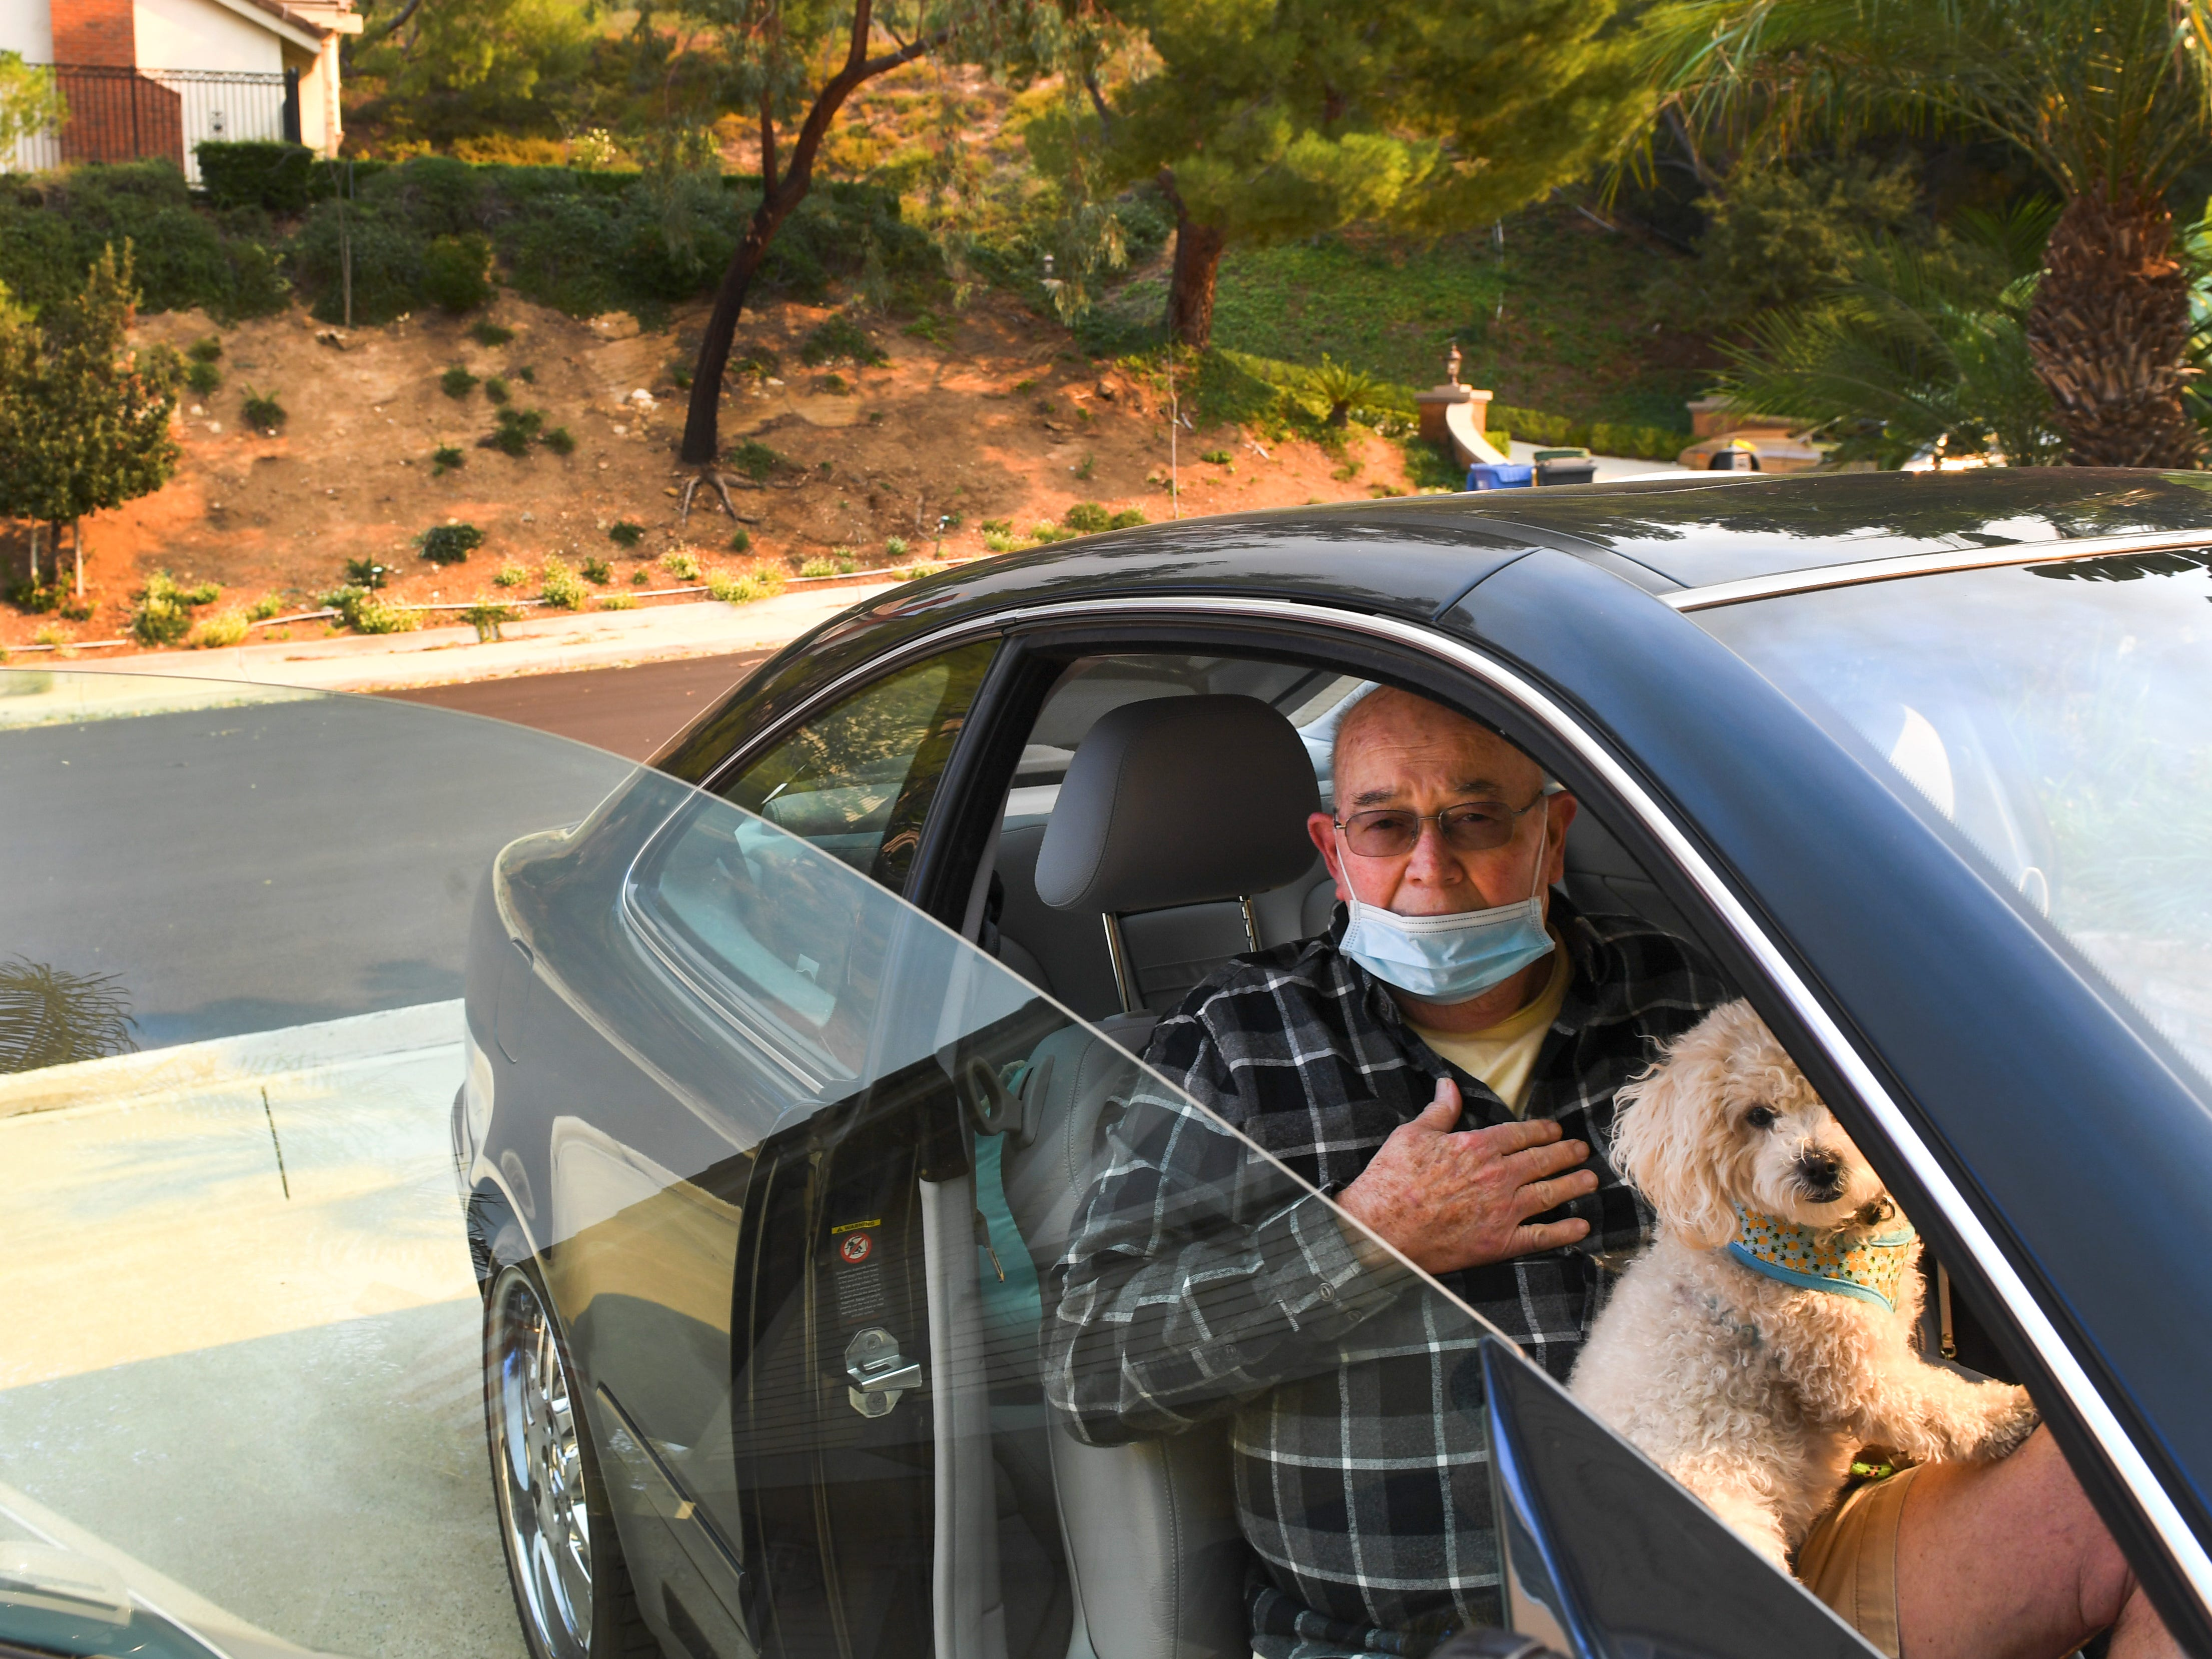 Jeff Riley waits to be evacuated from his home with the family dog, Nov. 9, 2018, in Thousand Oaks, Calif.